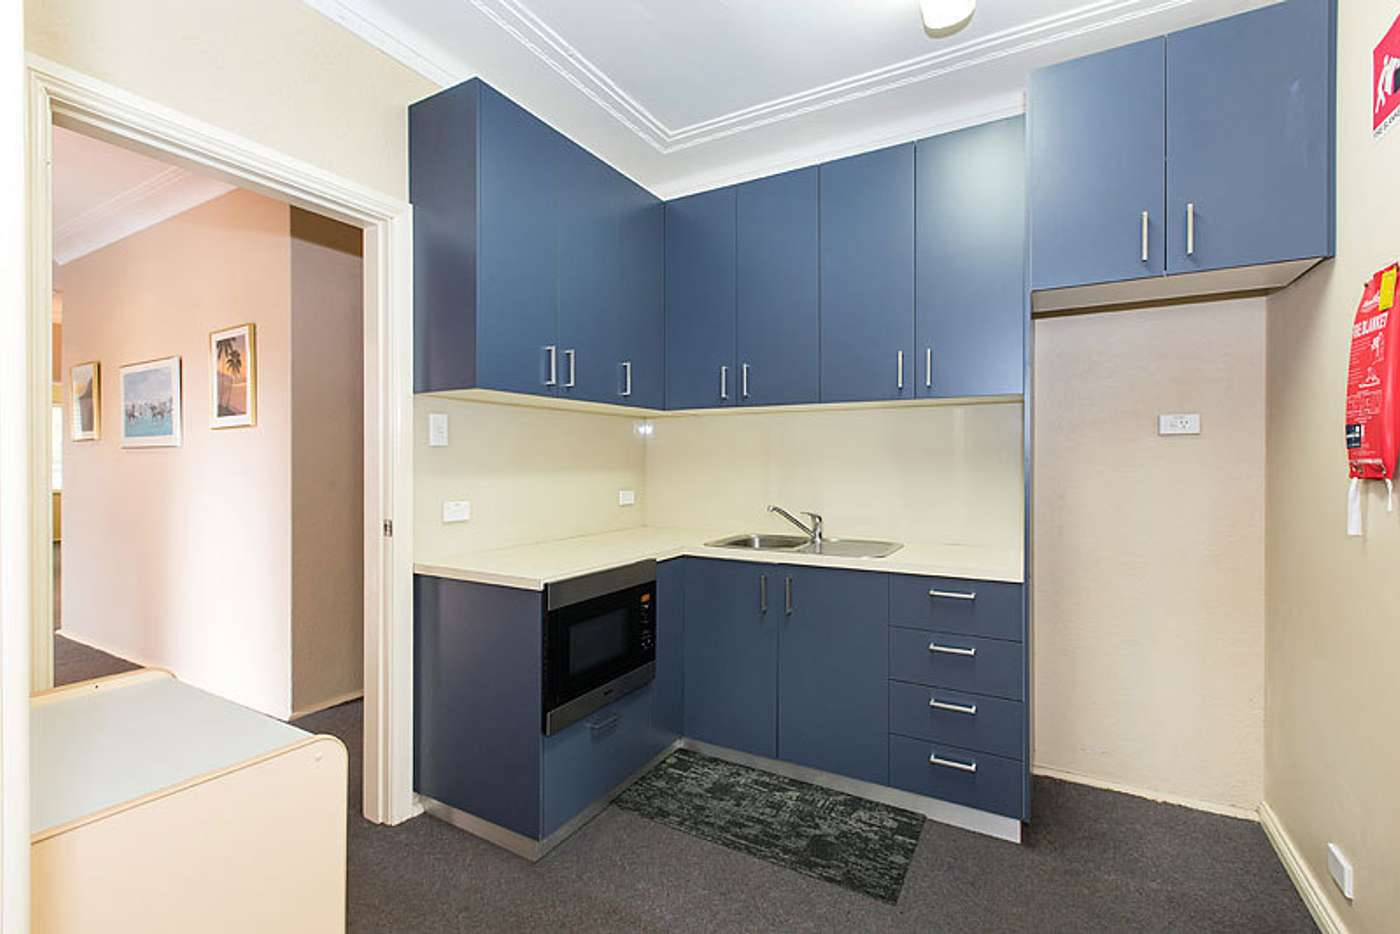 Sixth view of Homely house listing, 400 Kingsway, Caringbah NSW 2229